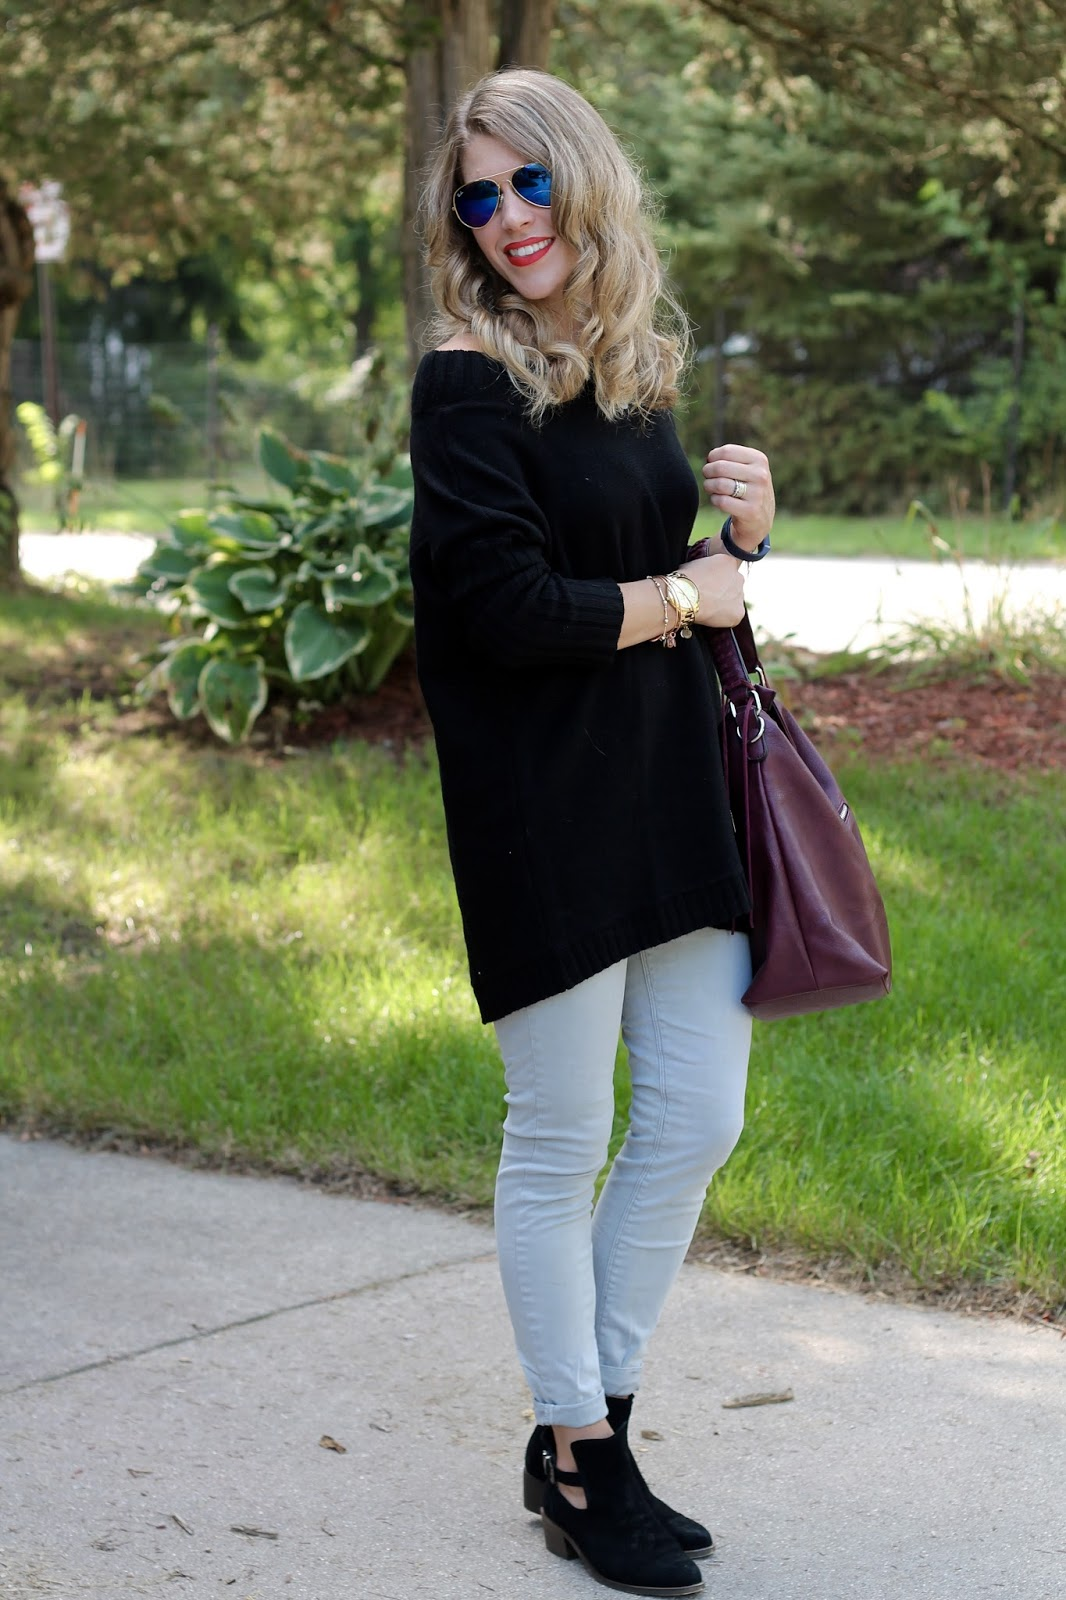 black Tobi off the shoulder sweater, grey jeans, black booties, burgundy bag, fall look with grey jeans